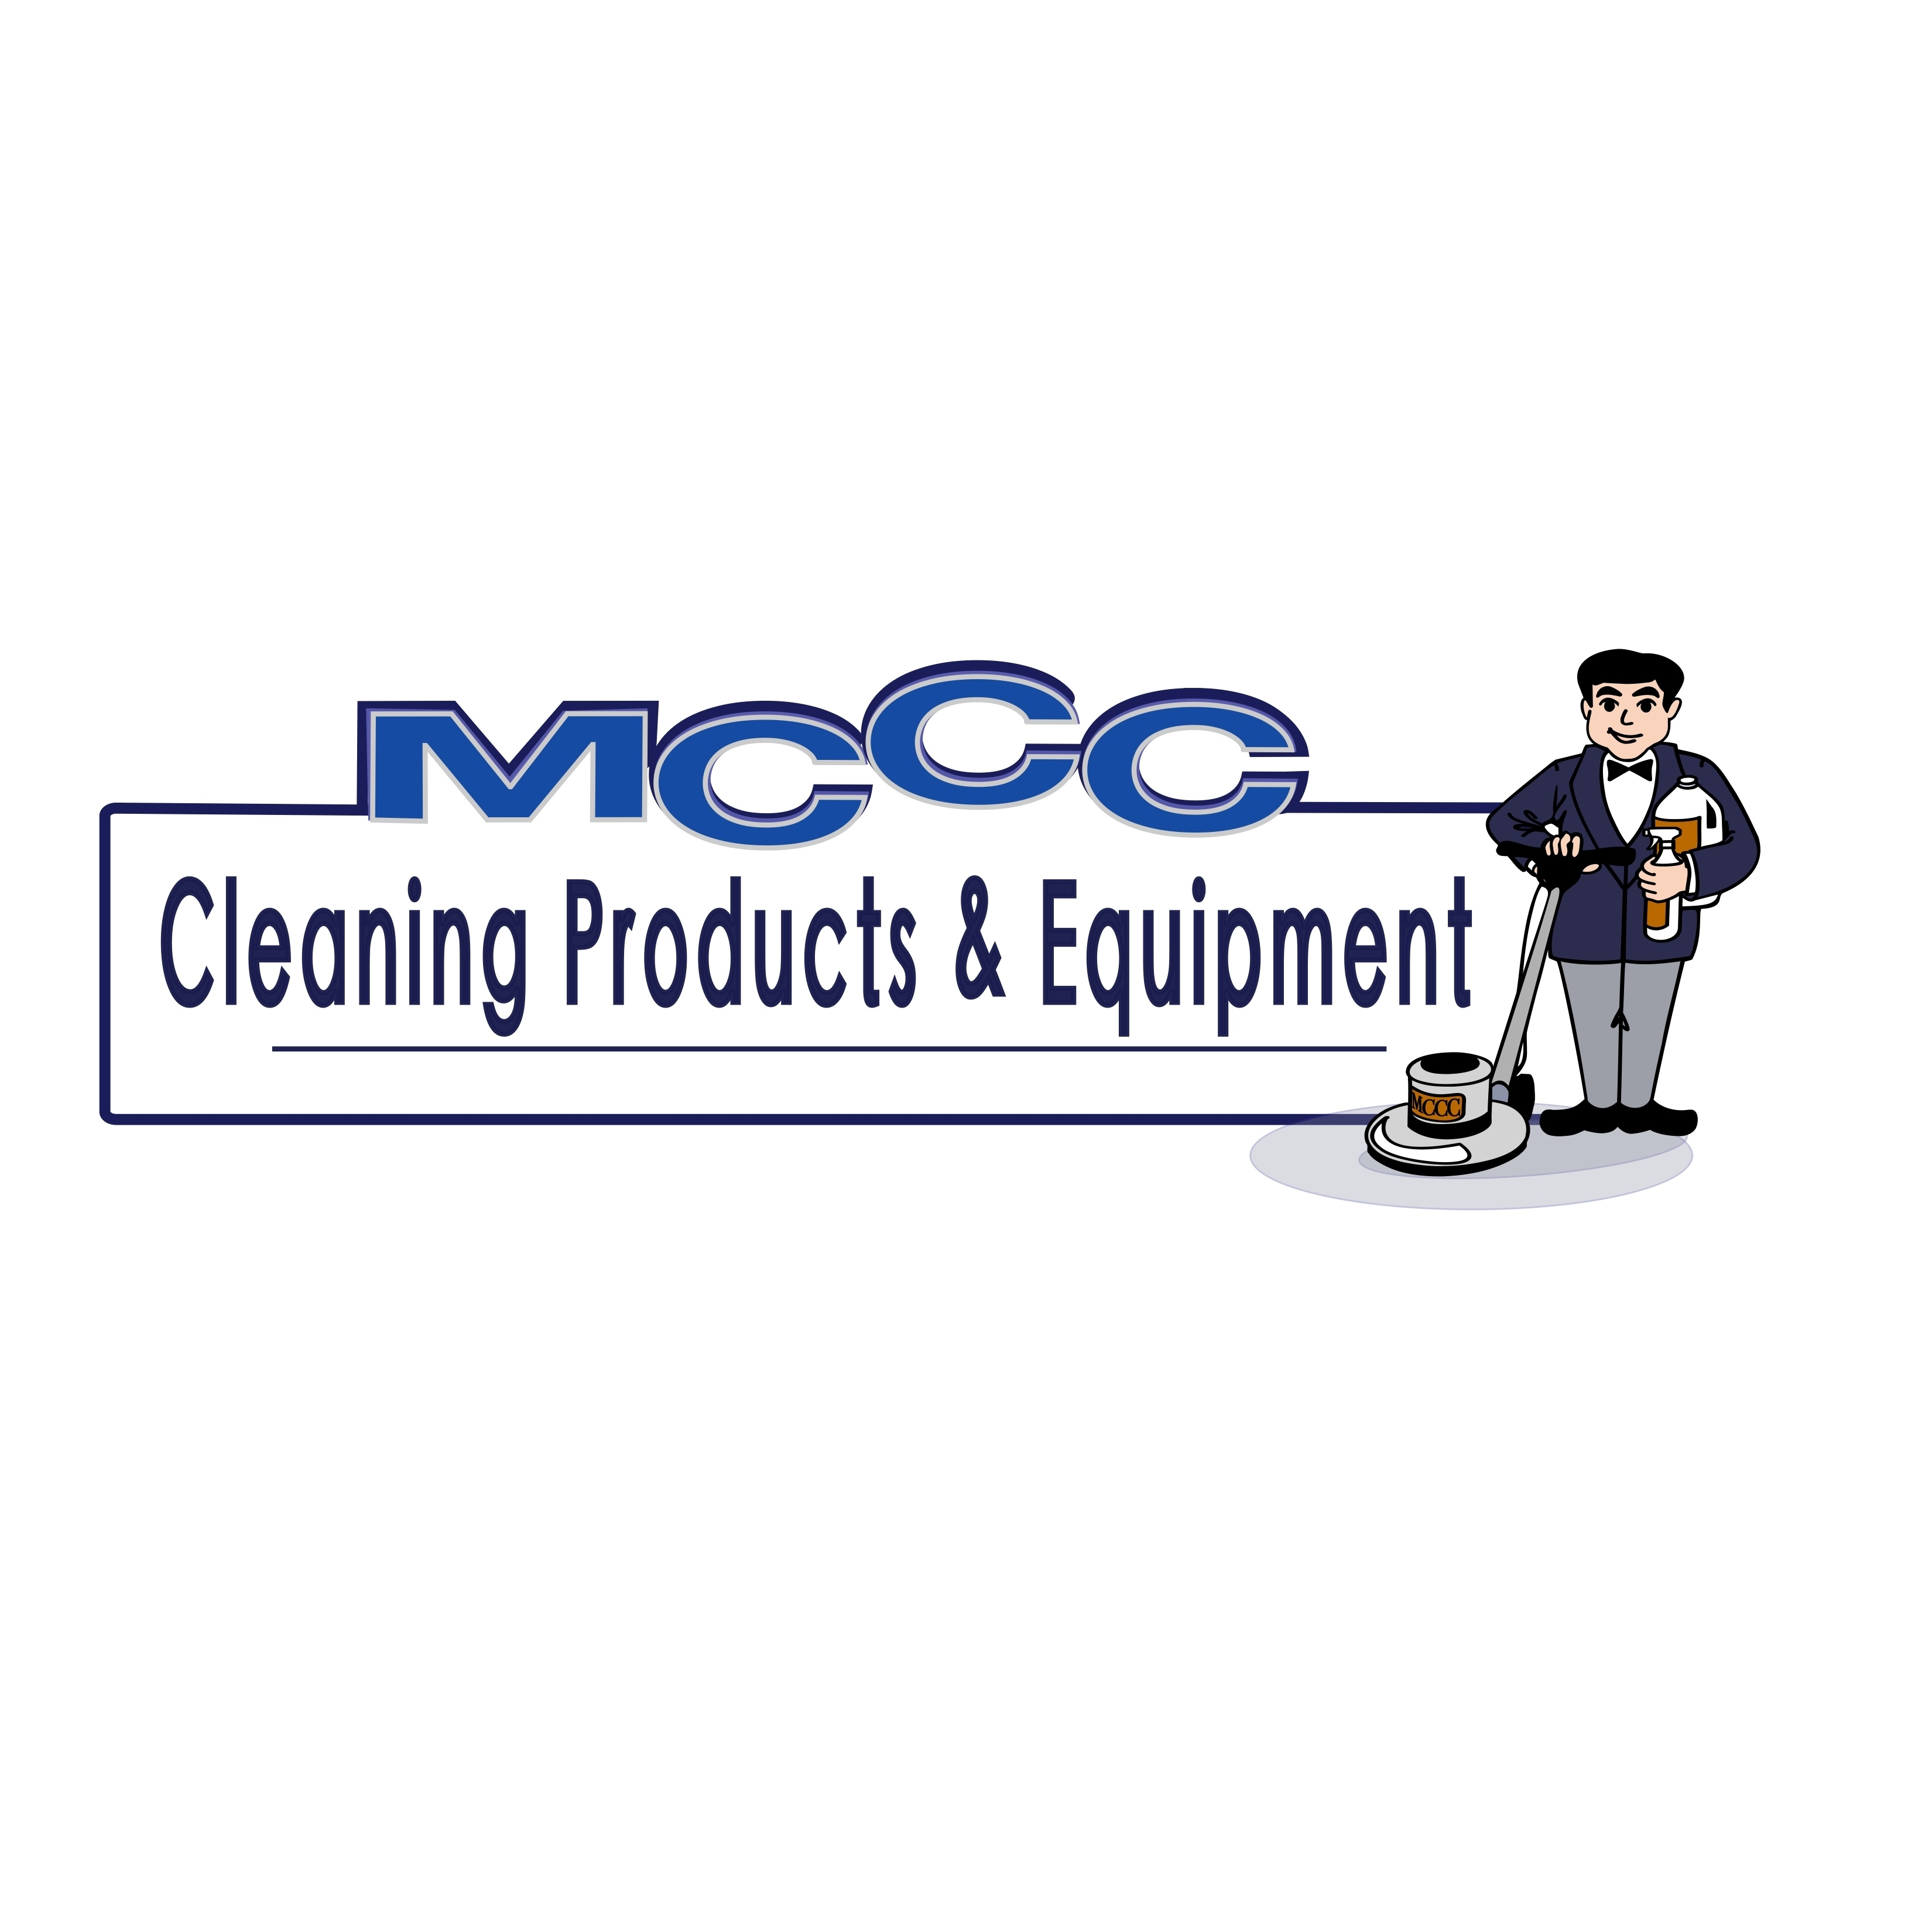 MCCC Cleaning Products and Equipment